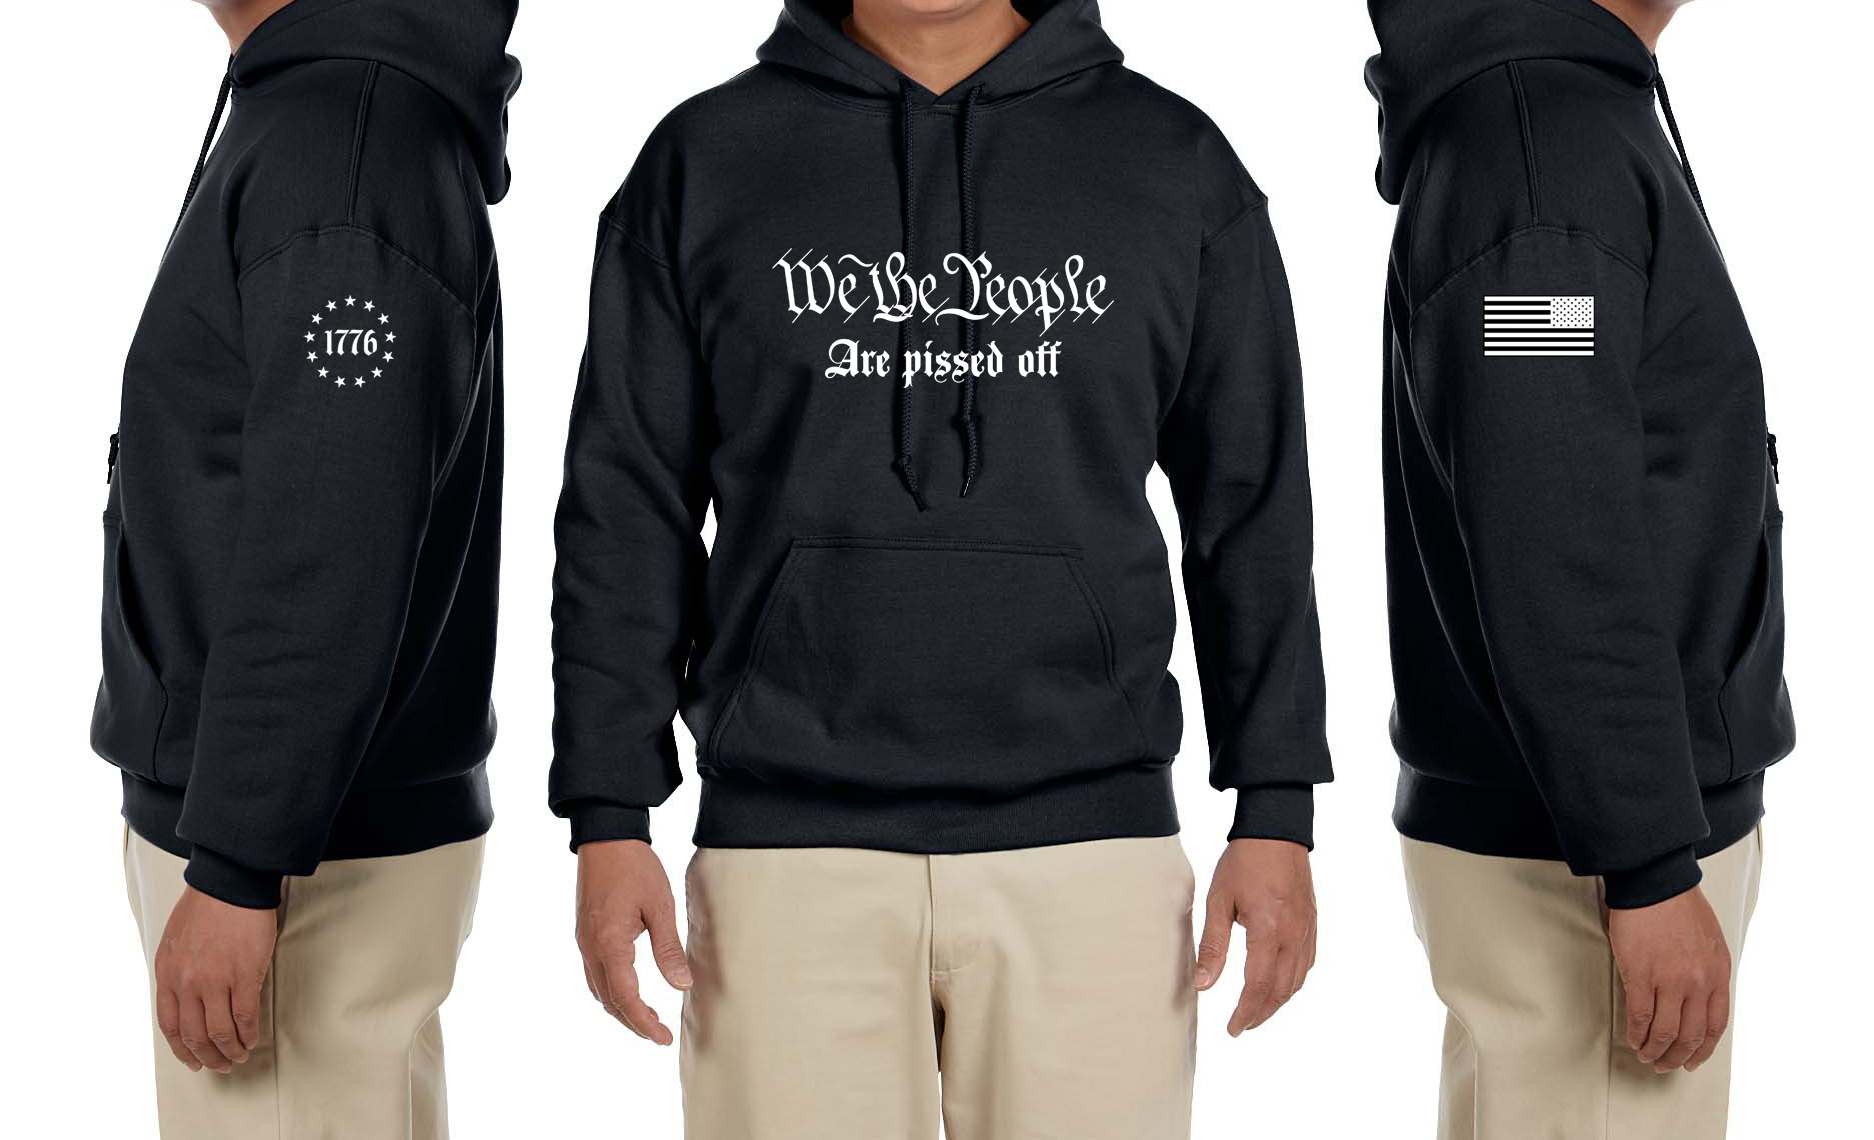 We The People Are Pissed Off 2nd Amendment 1776 Flag Hoodie